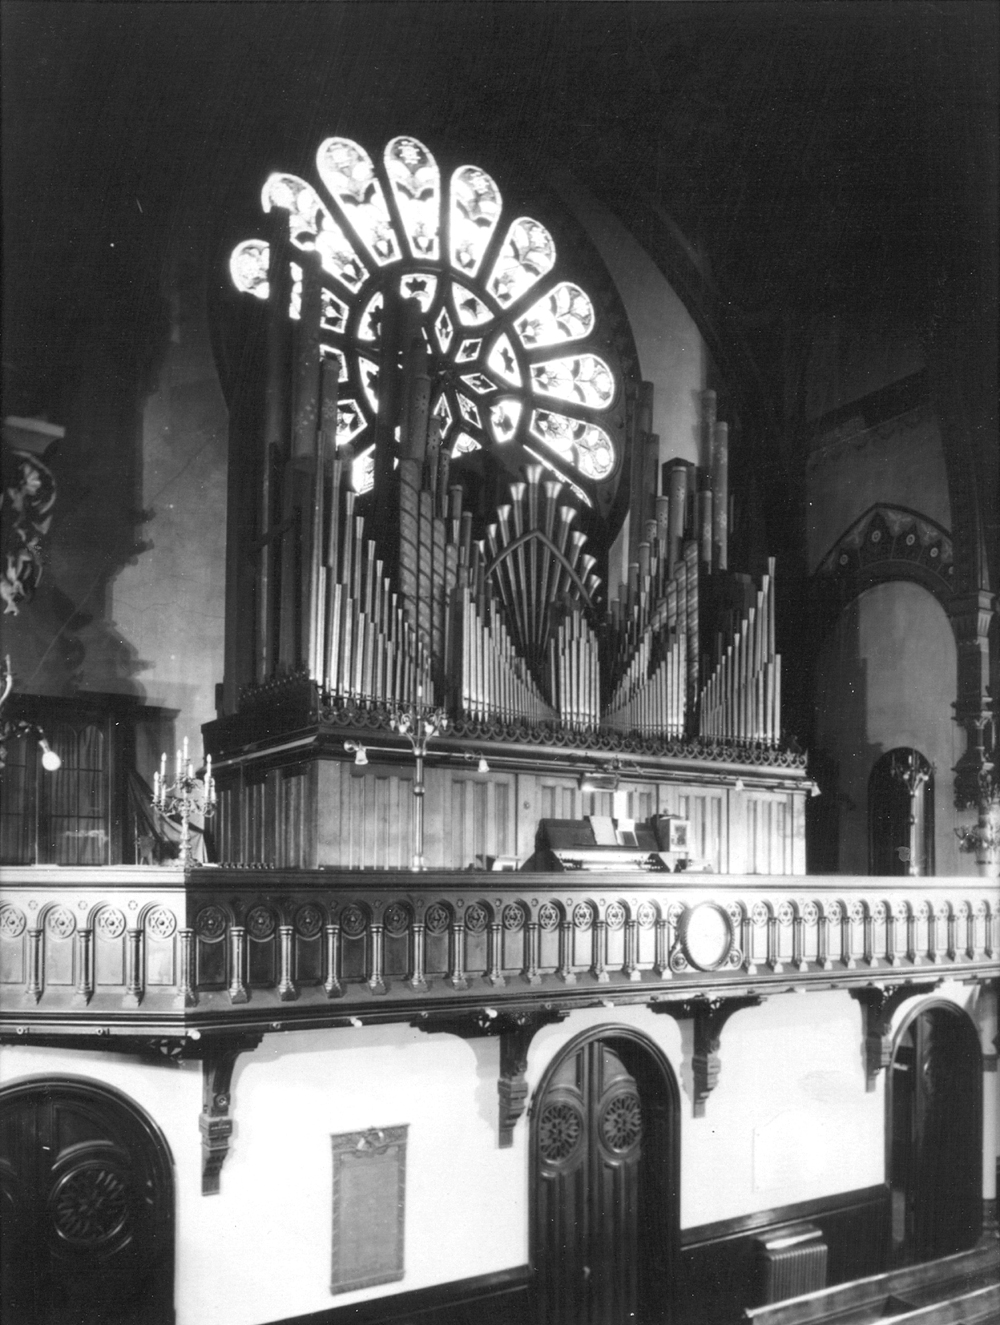 George Jardine & Son Organ (c.1875) in Temple Rodeph Sholom - New York City (Rodeph Sholom Archives)